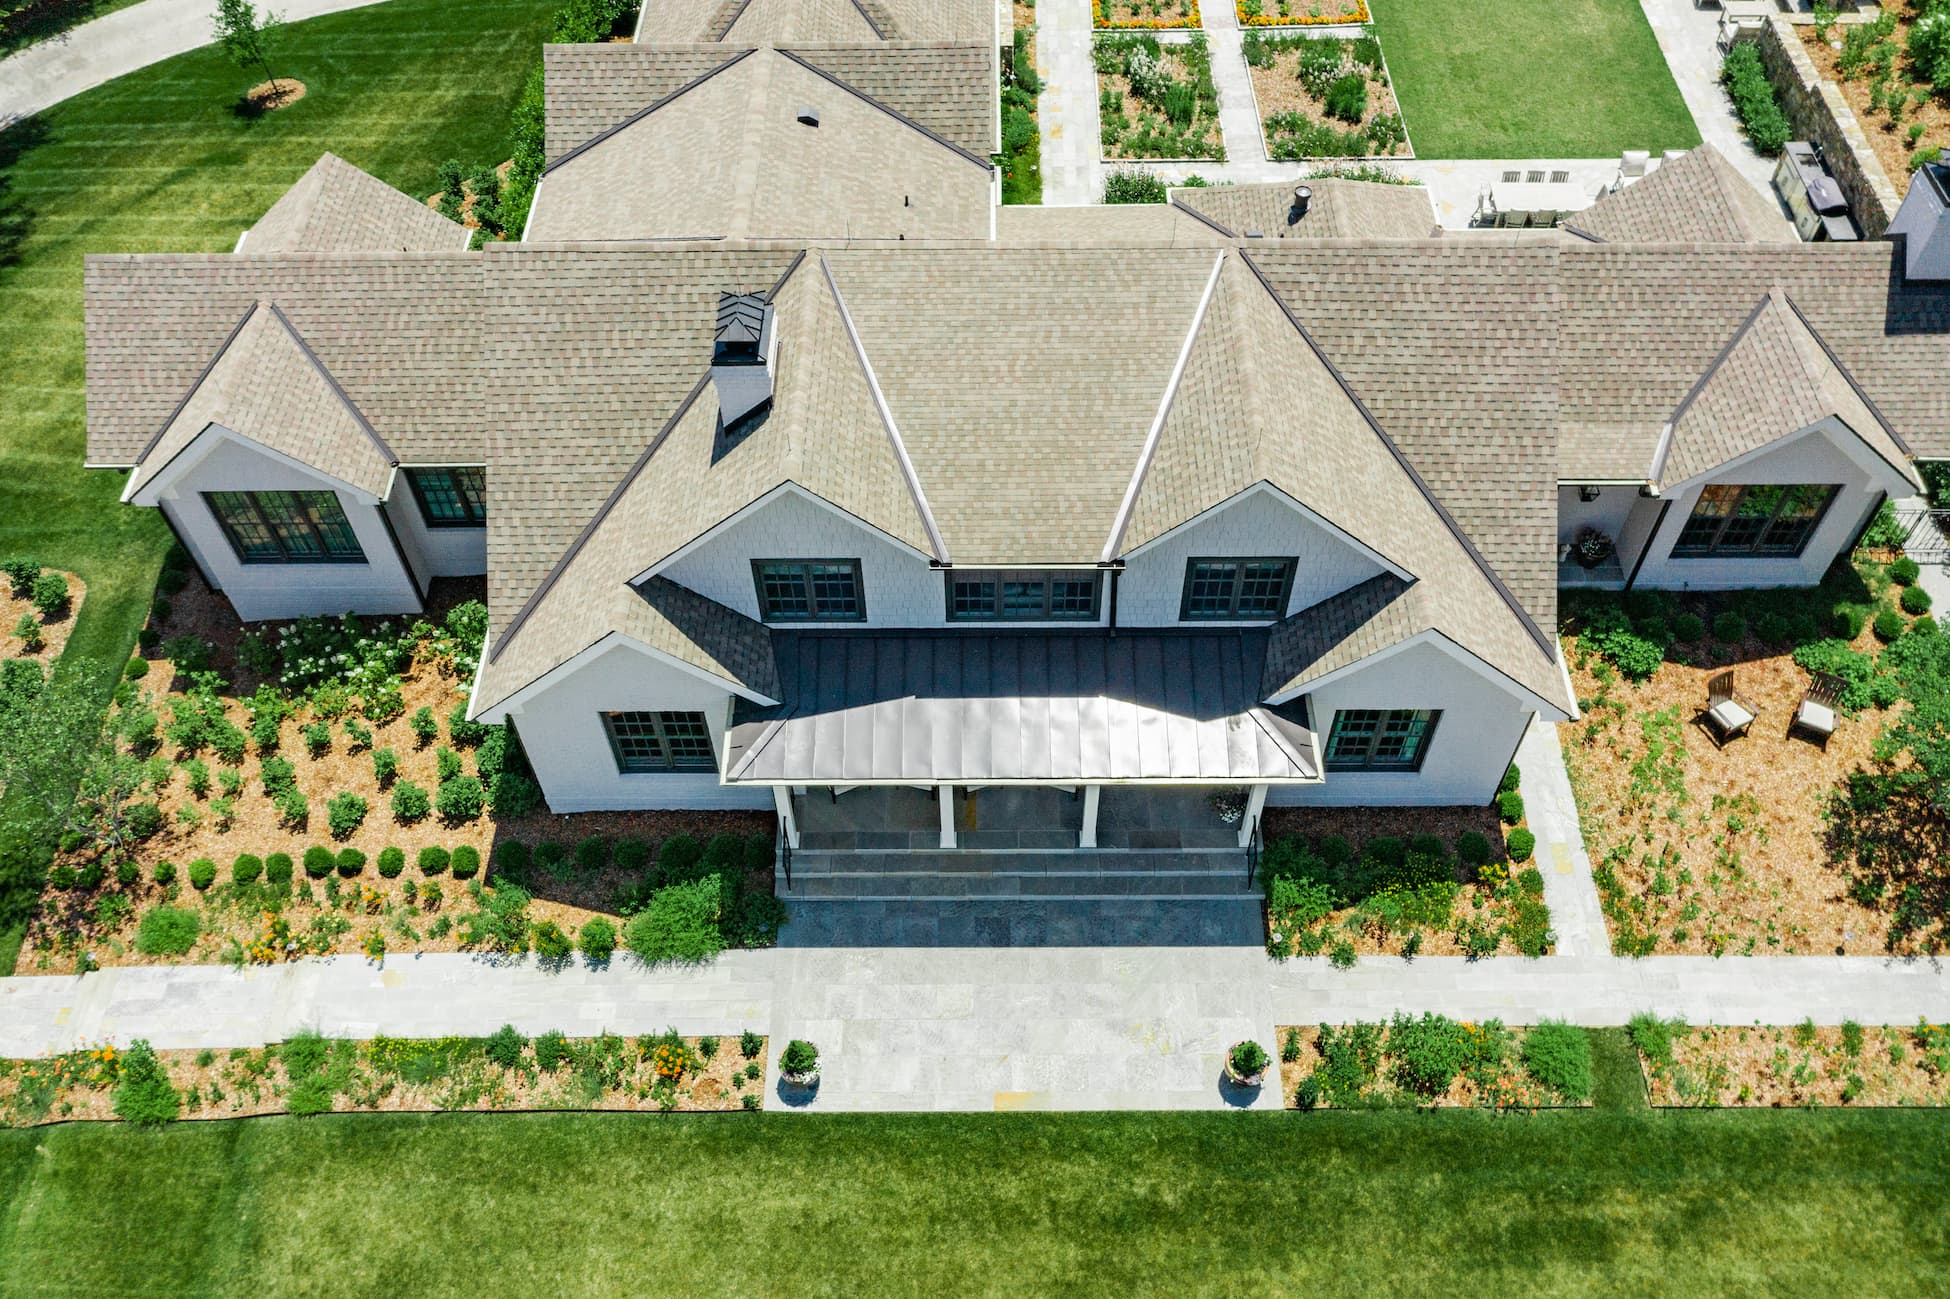 aerial view of a beautiful home roof